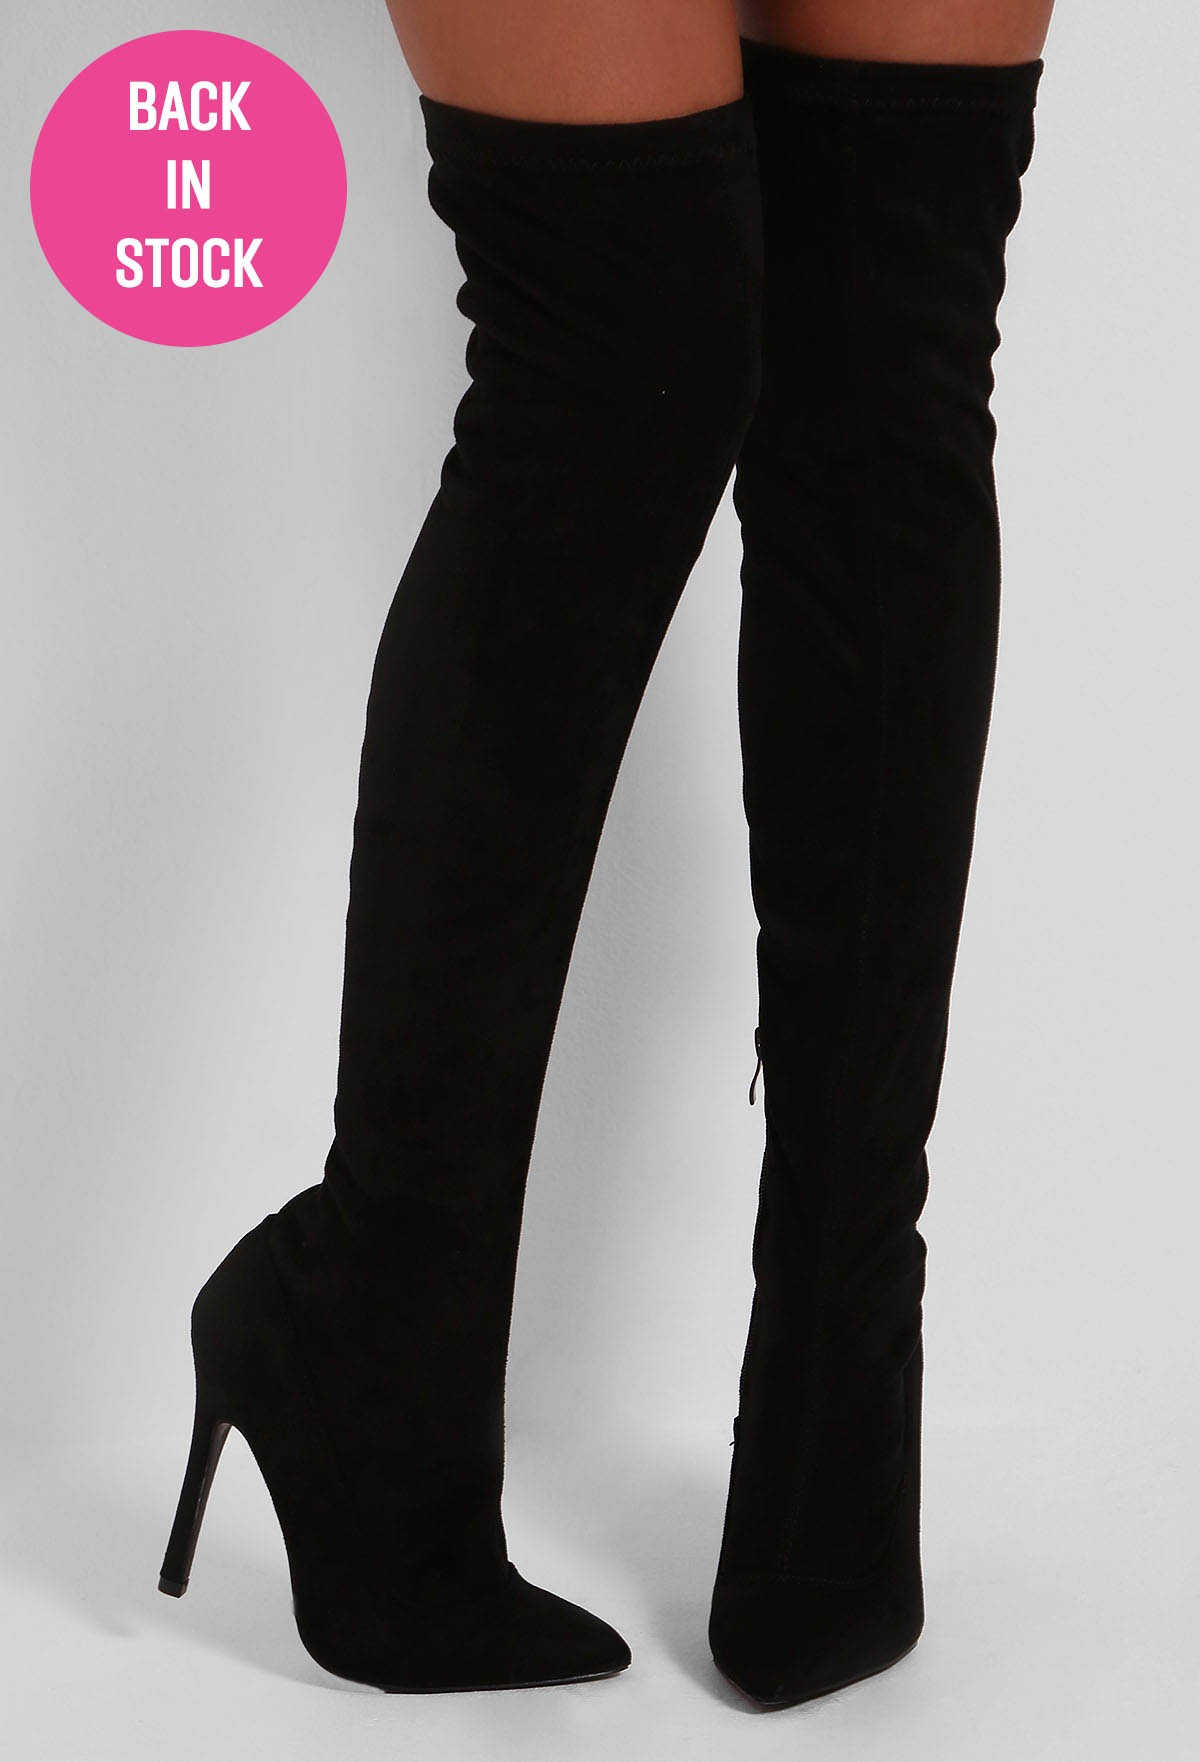 Over The Knee Heel Boots - Cr Boot